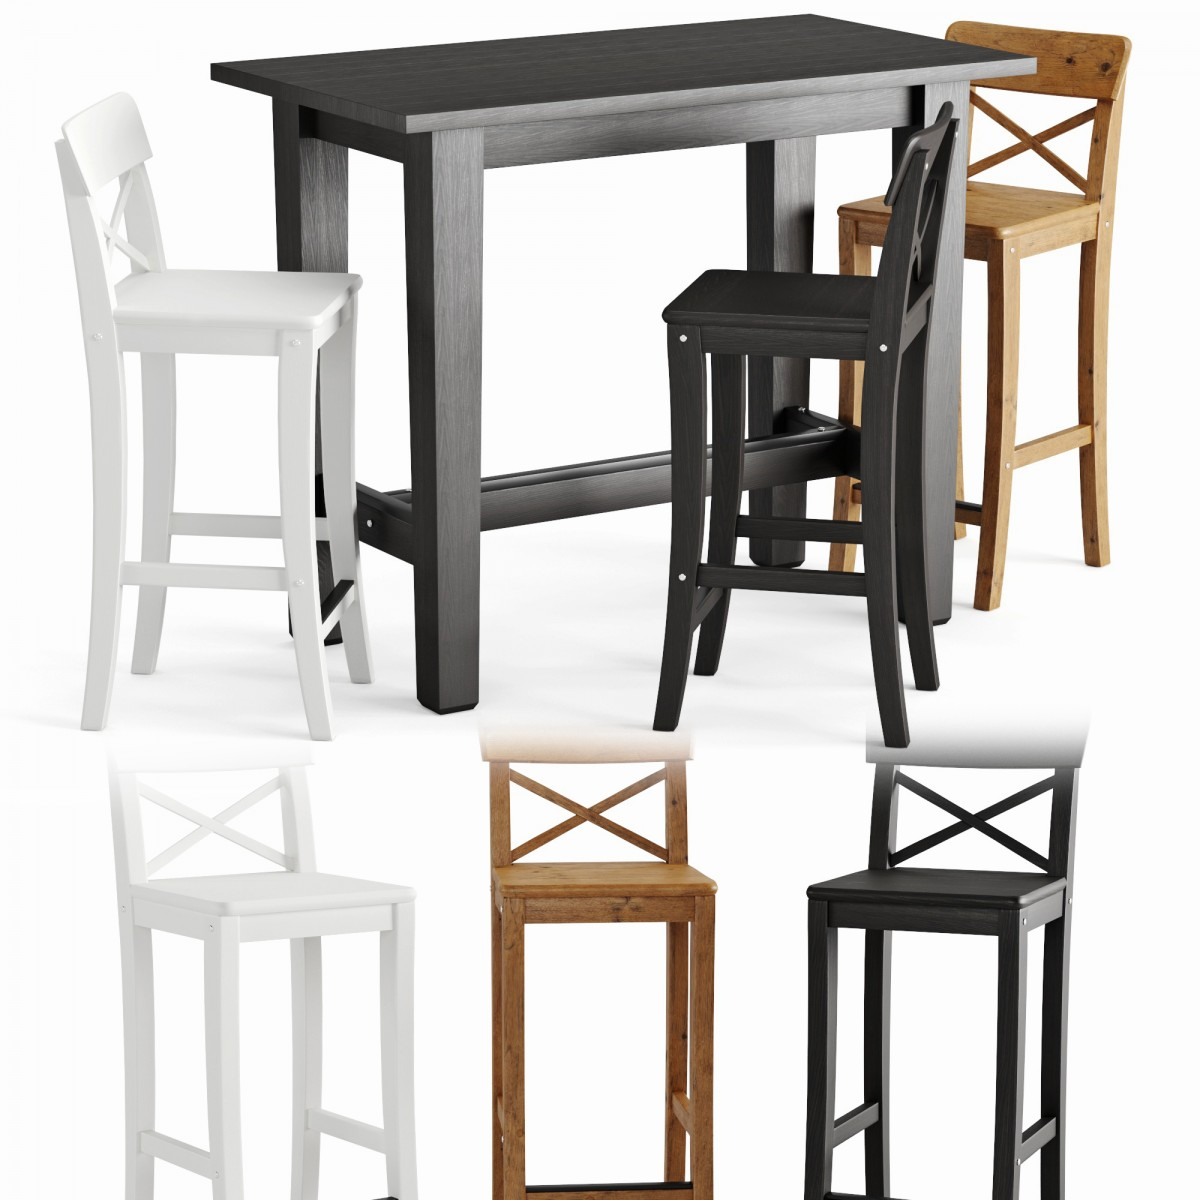 Bar Table And Chair Stornas Ingolf - 9D Model for VRay, Corona